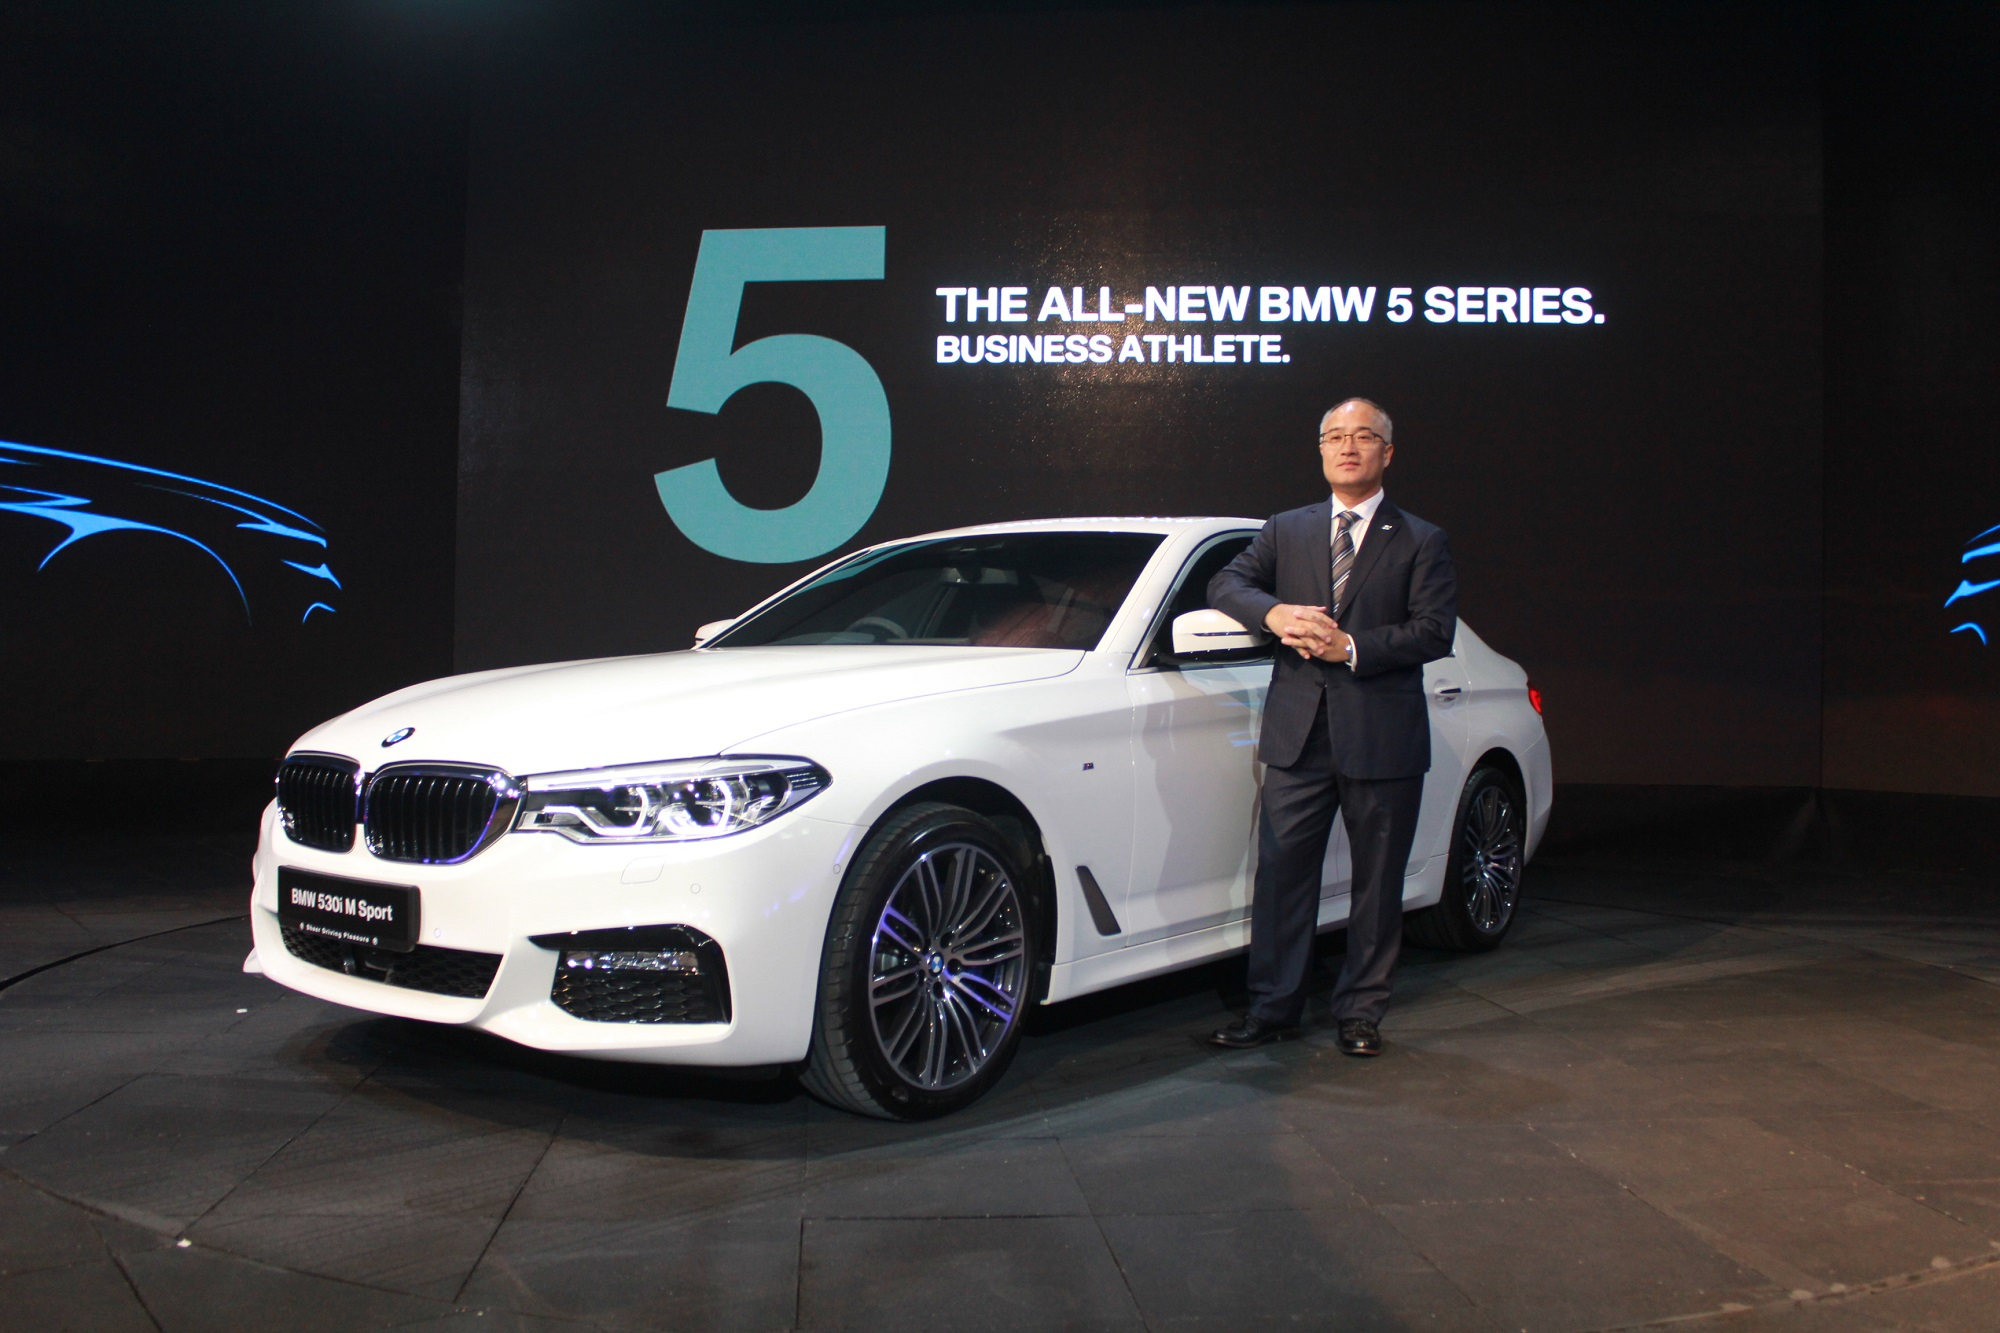 BMW Group Malaysia's Chief Executive Officer and Managing Director Han Sang Yun presenting the New 5 Series at the Official Launch